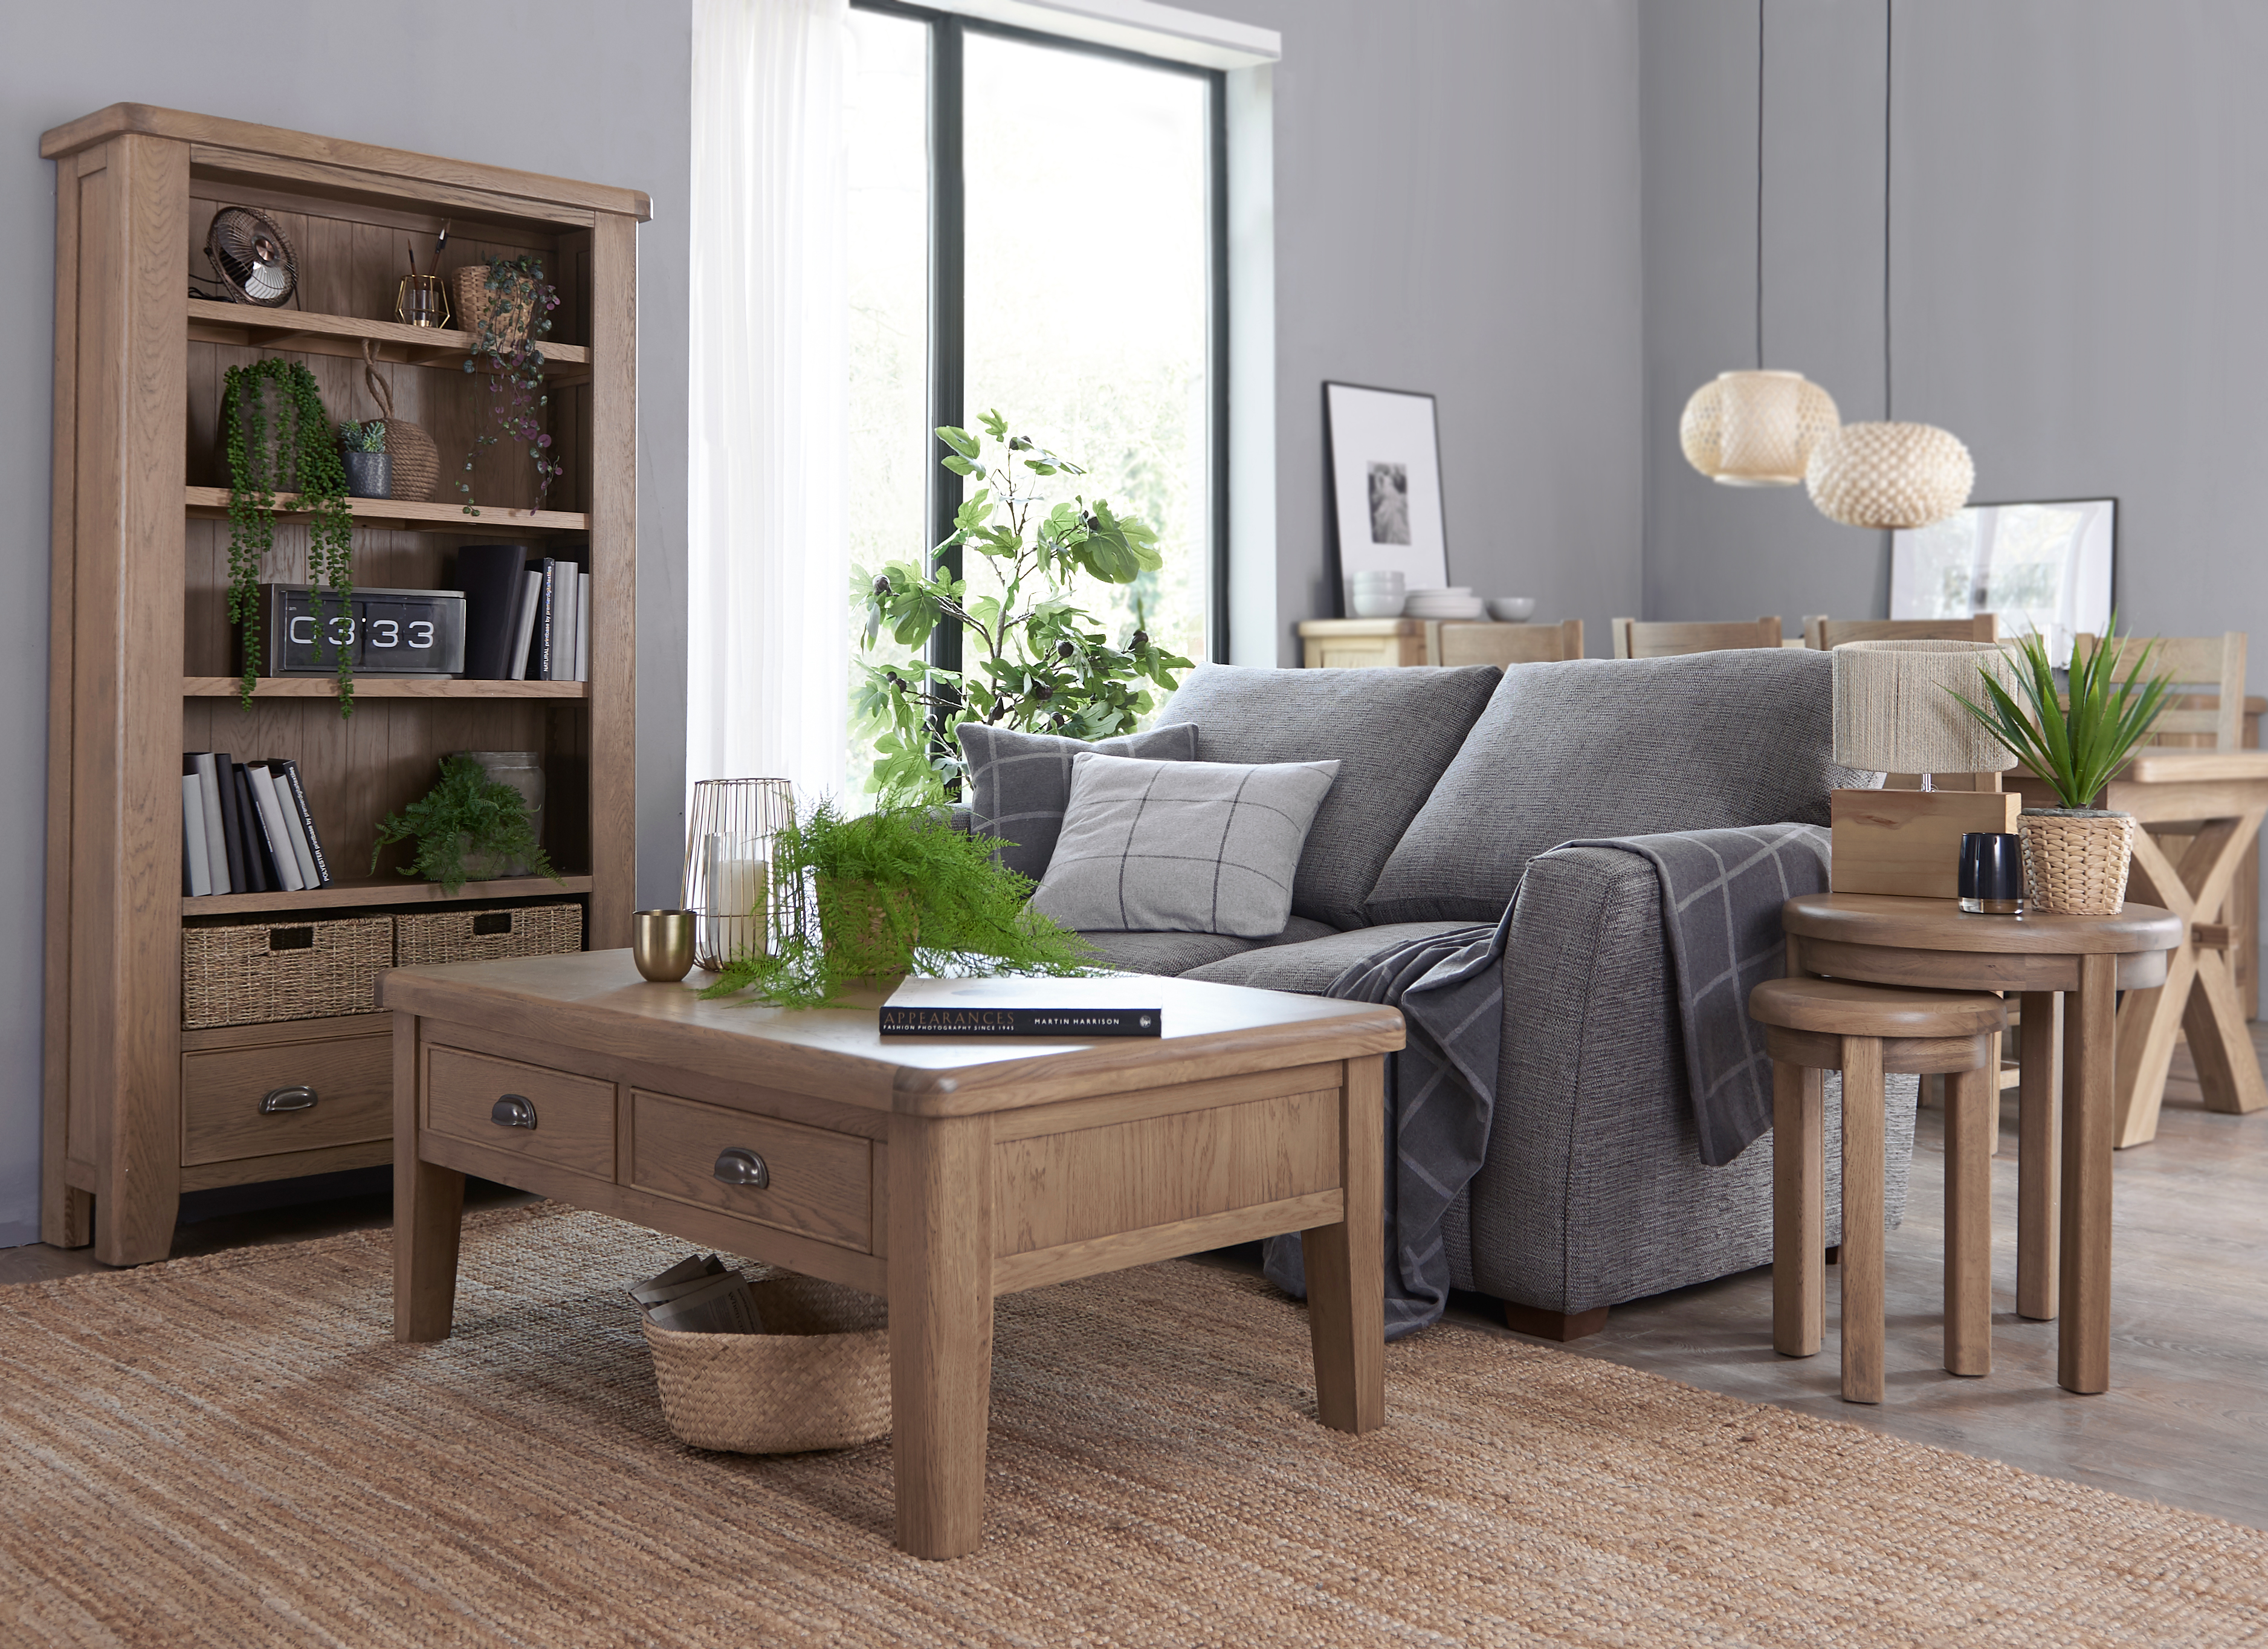 Light Wood Living and Dining furniture